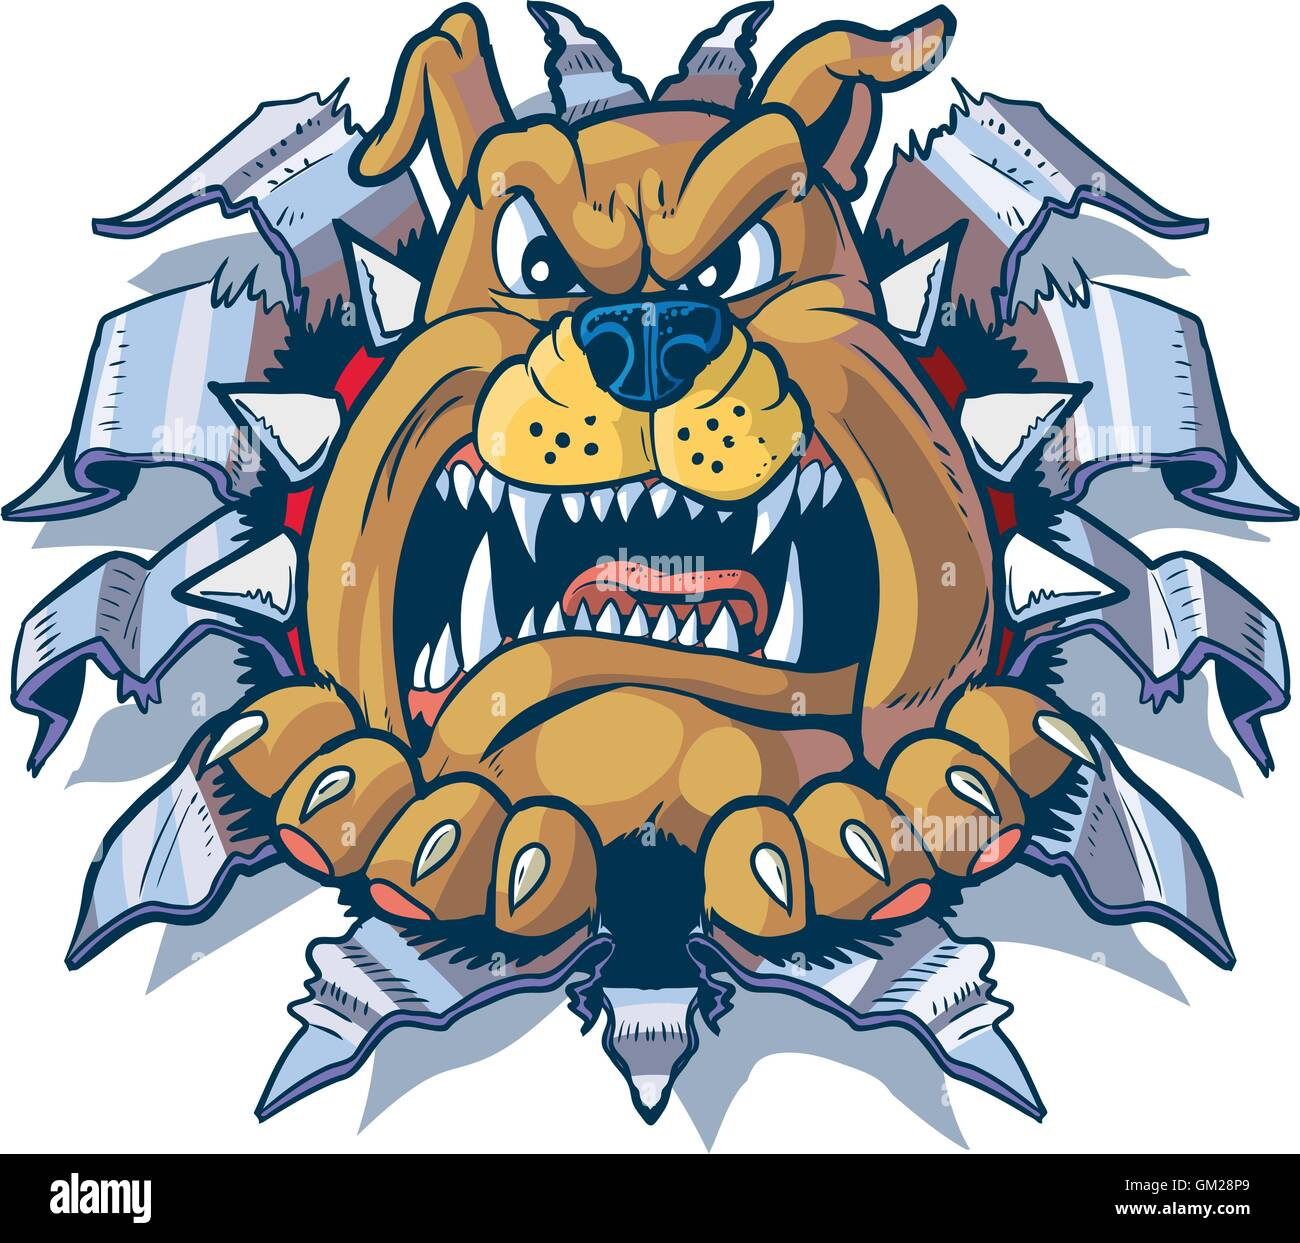 Vector cartoon clip art illustration of an angry bulldog with a spiked collar ripping, punching, or tearing through - Stock Vector